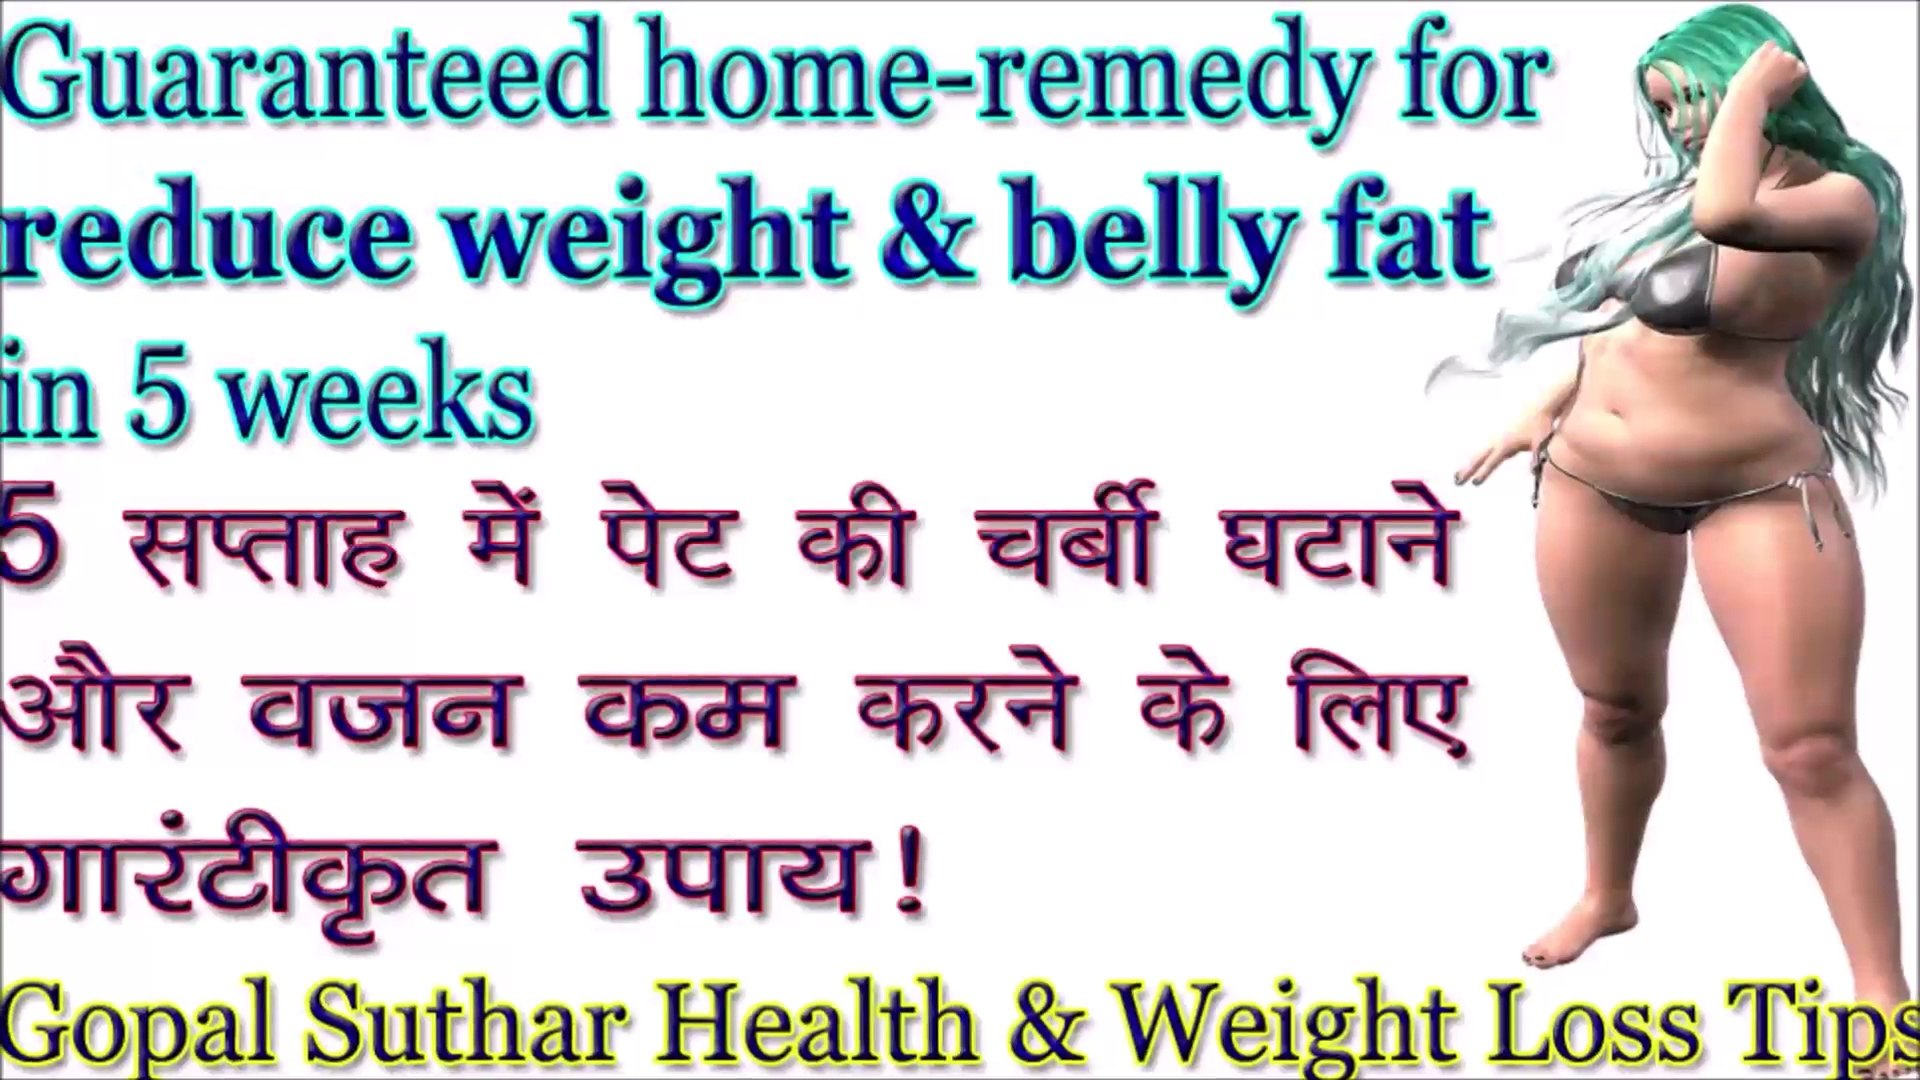 Guaranteed effective home-remedy to lose weight and reduce belly fat in 5 weeks | Reduce weight and